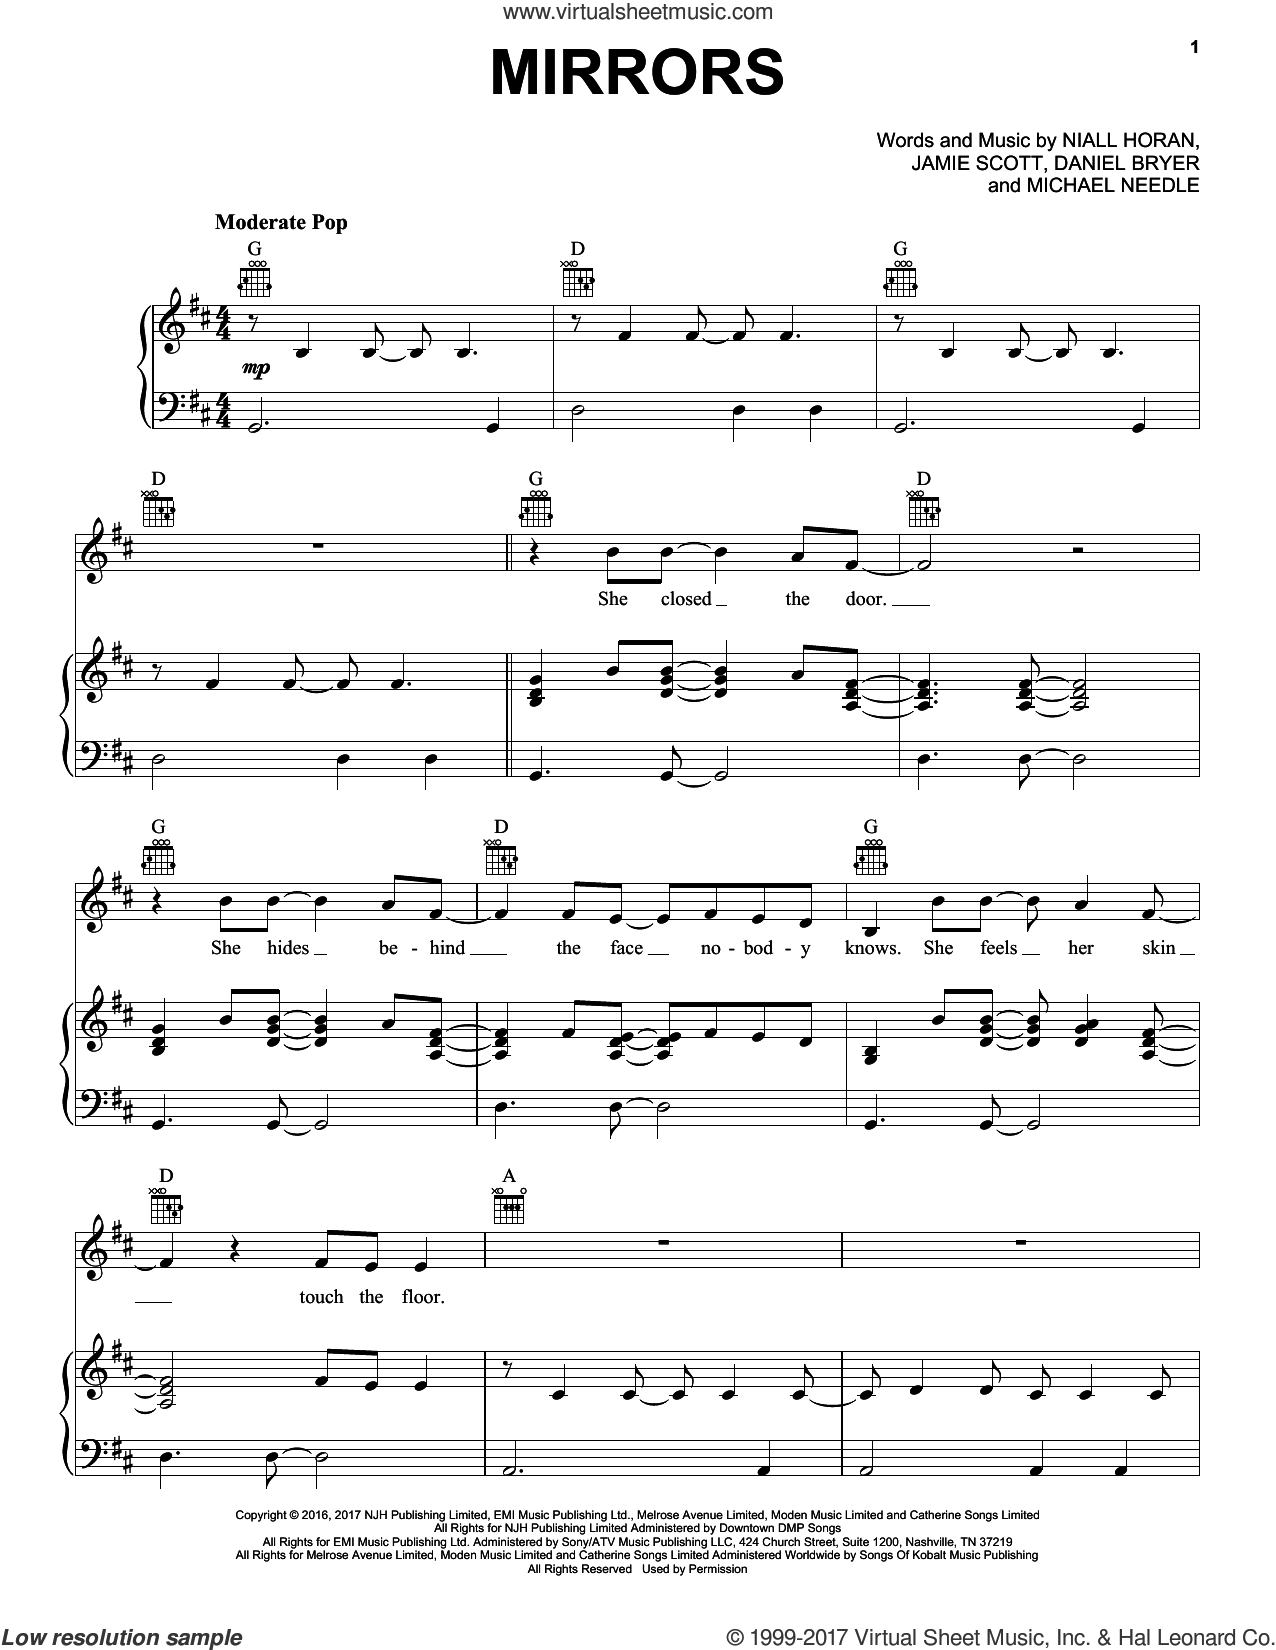 Mirrors sheet music for voice, piano or guitar by Niall Horan, Daniel Bryer, Jamie Scott and Michael Needle, intermediate skill level